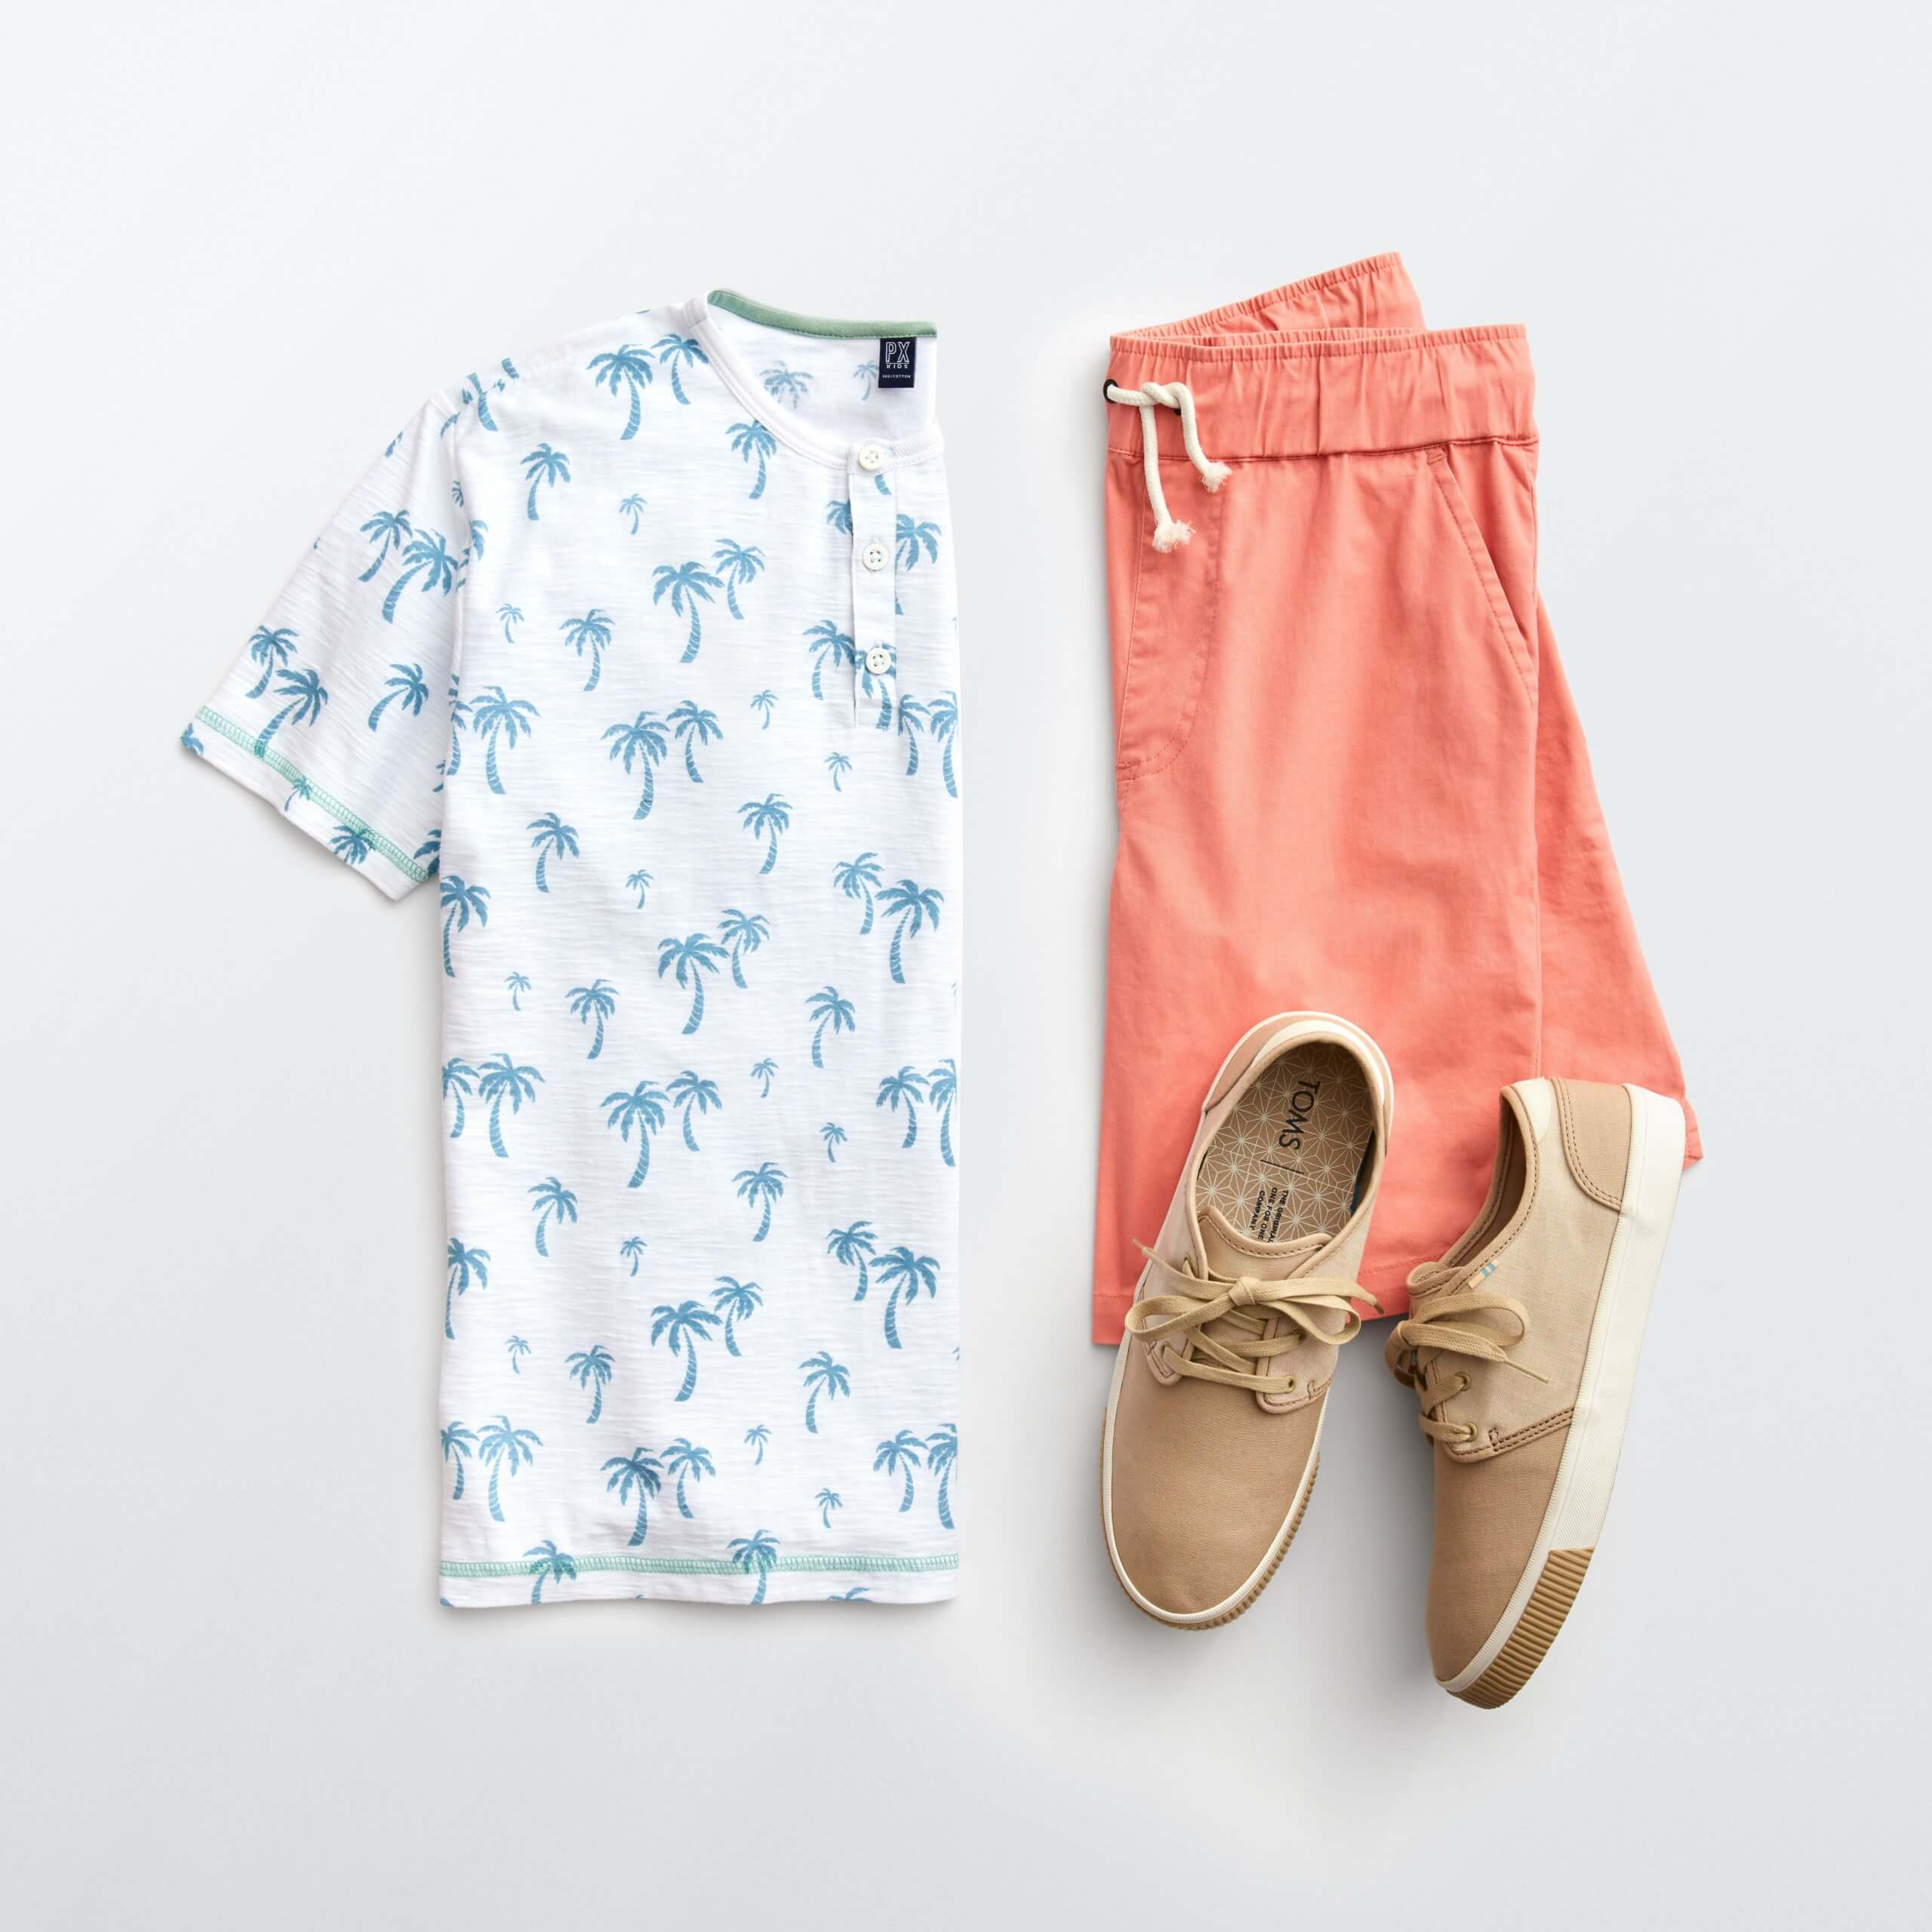 Stitch Fix Men's outfit laydown featuring salmon shorts with white short sleeve henley with blue palm tree print and brown canvas sneakers.